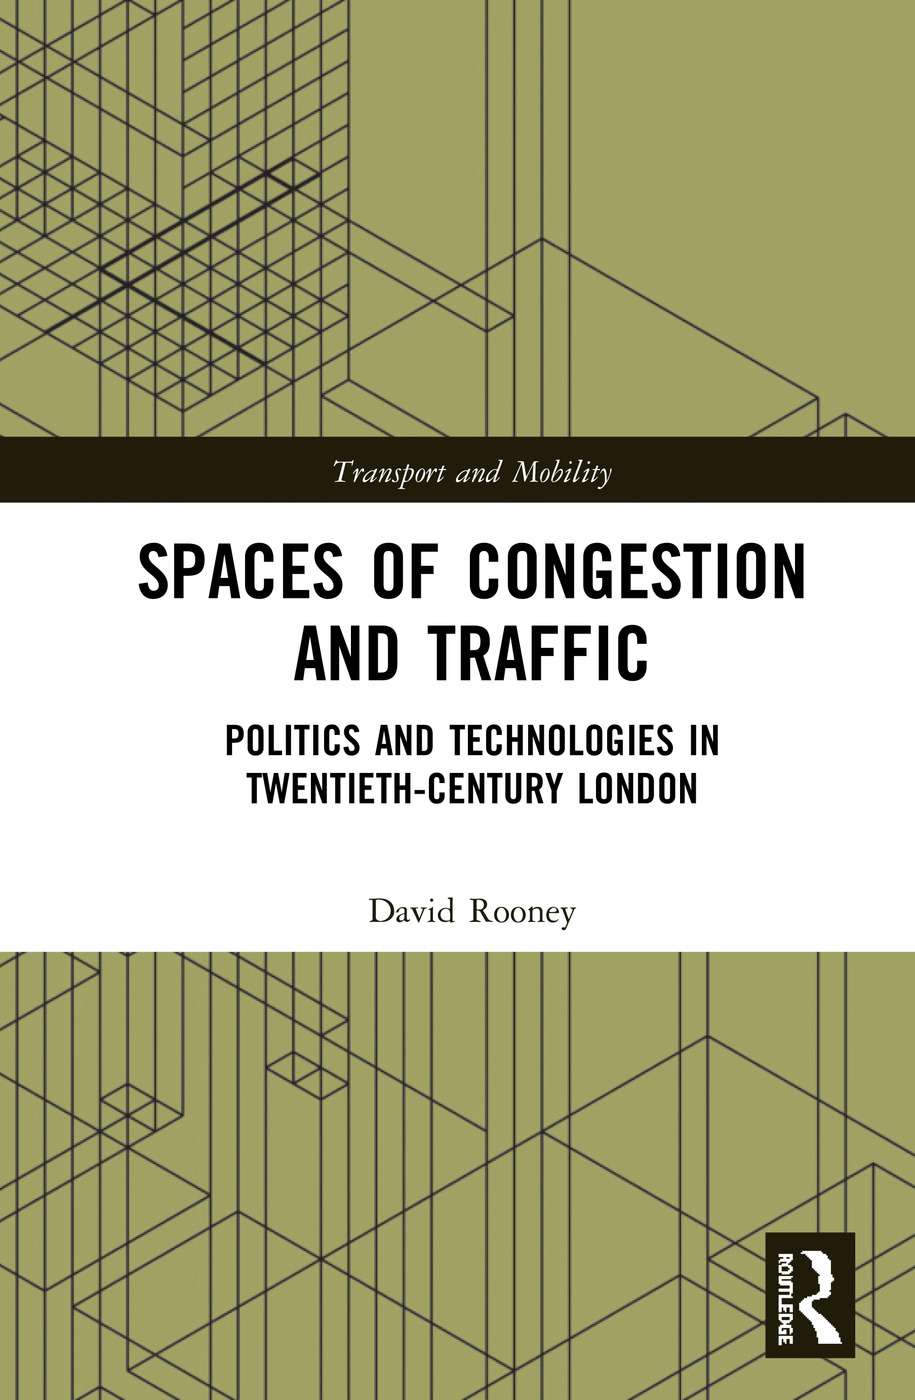 Spaces of Congestion and Traffic: Politics and Technologies in Twentieth-Century London book cover